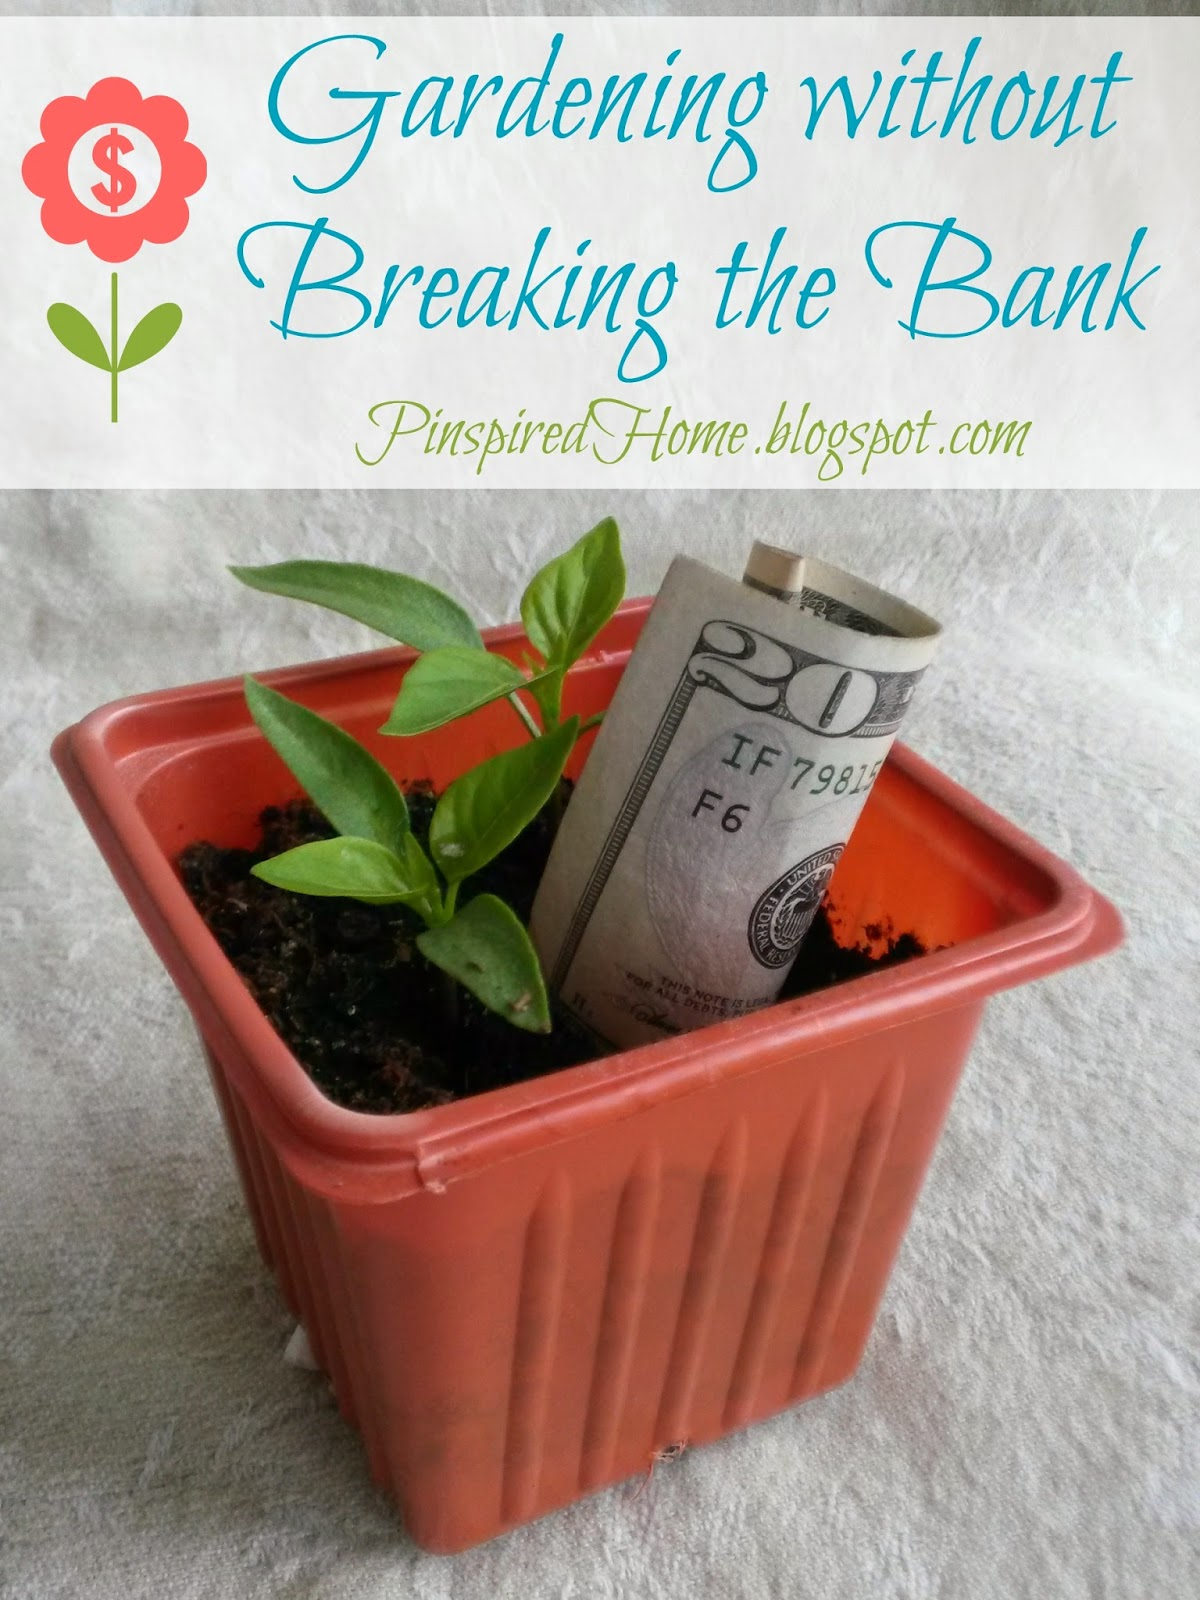 http://pinspiredhome.blogspot.com/2014/05/gardening-without-breaking-bank.html